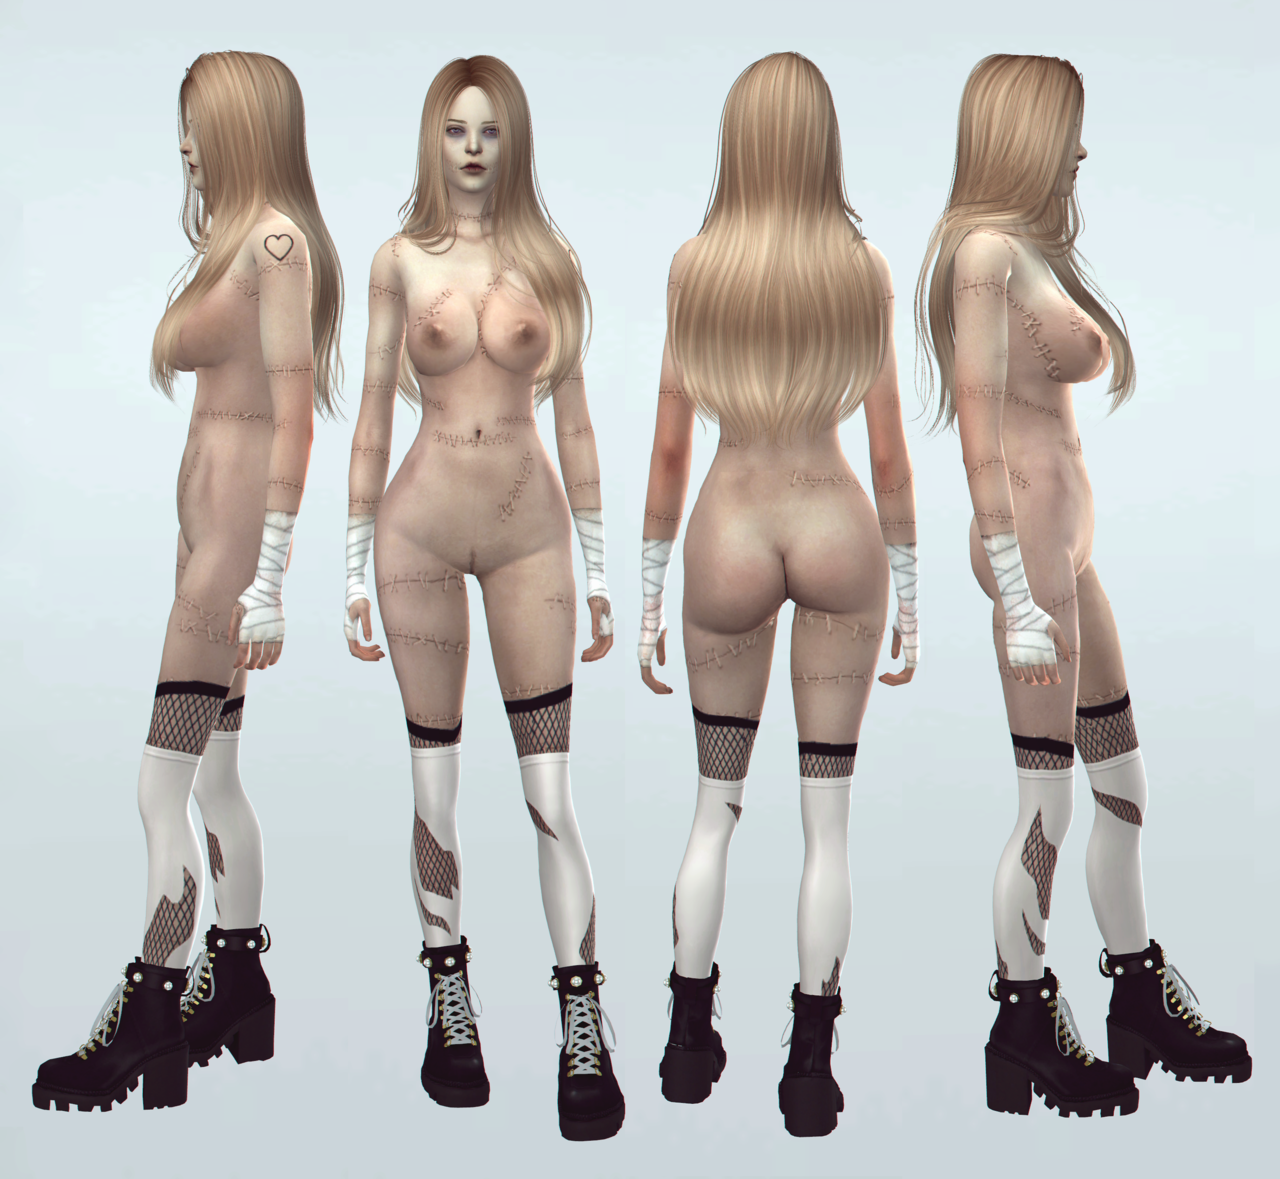 HQ legs version 5 by Magic Bot